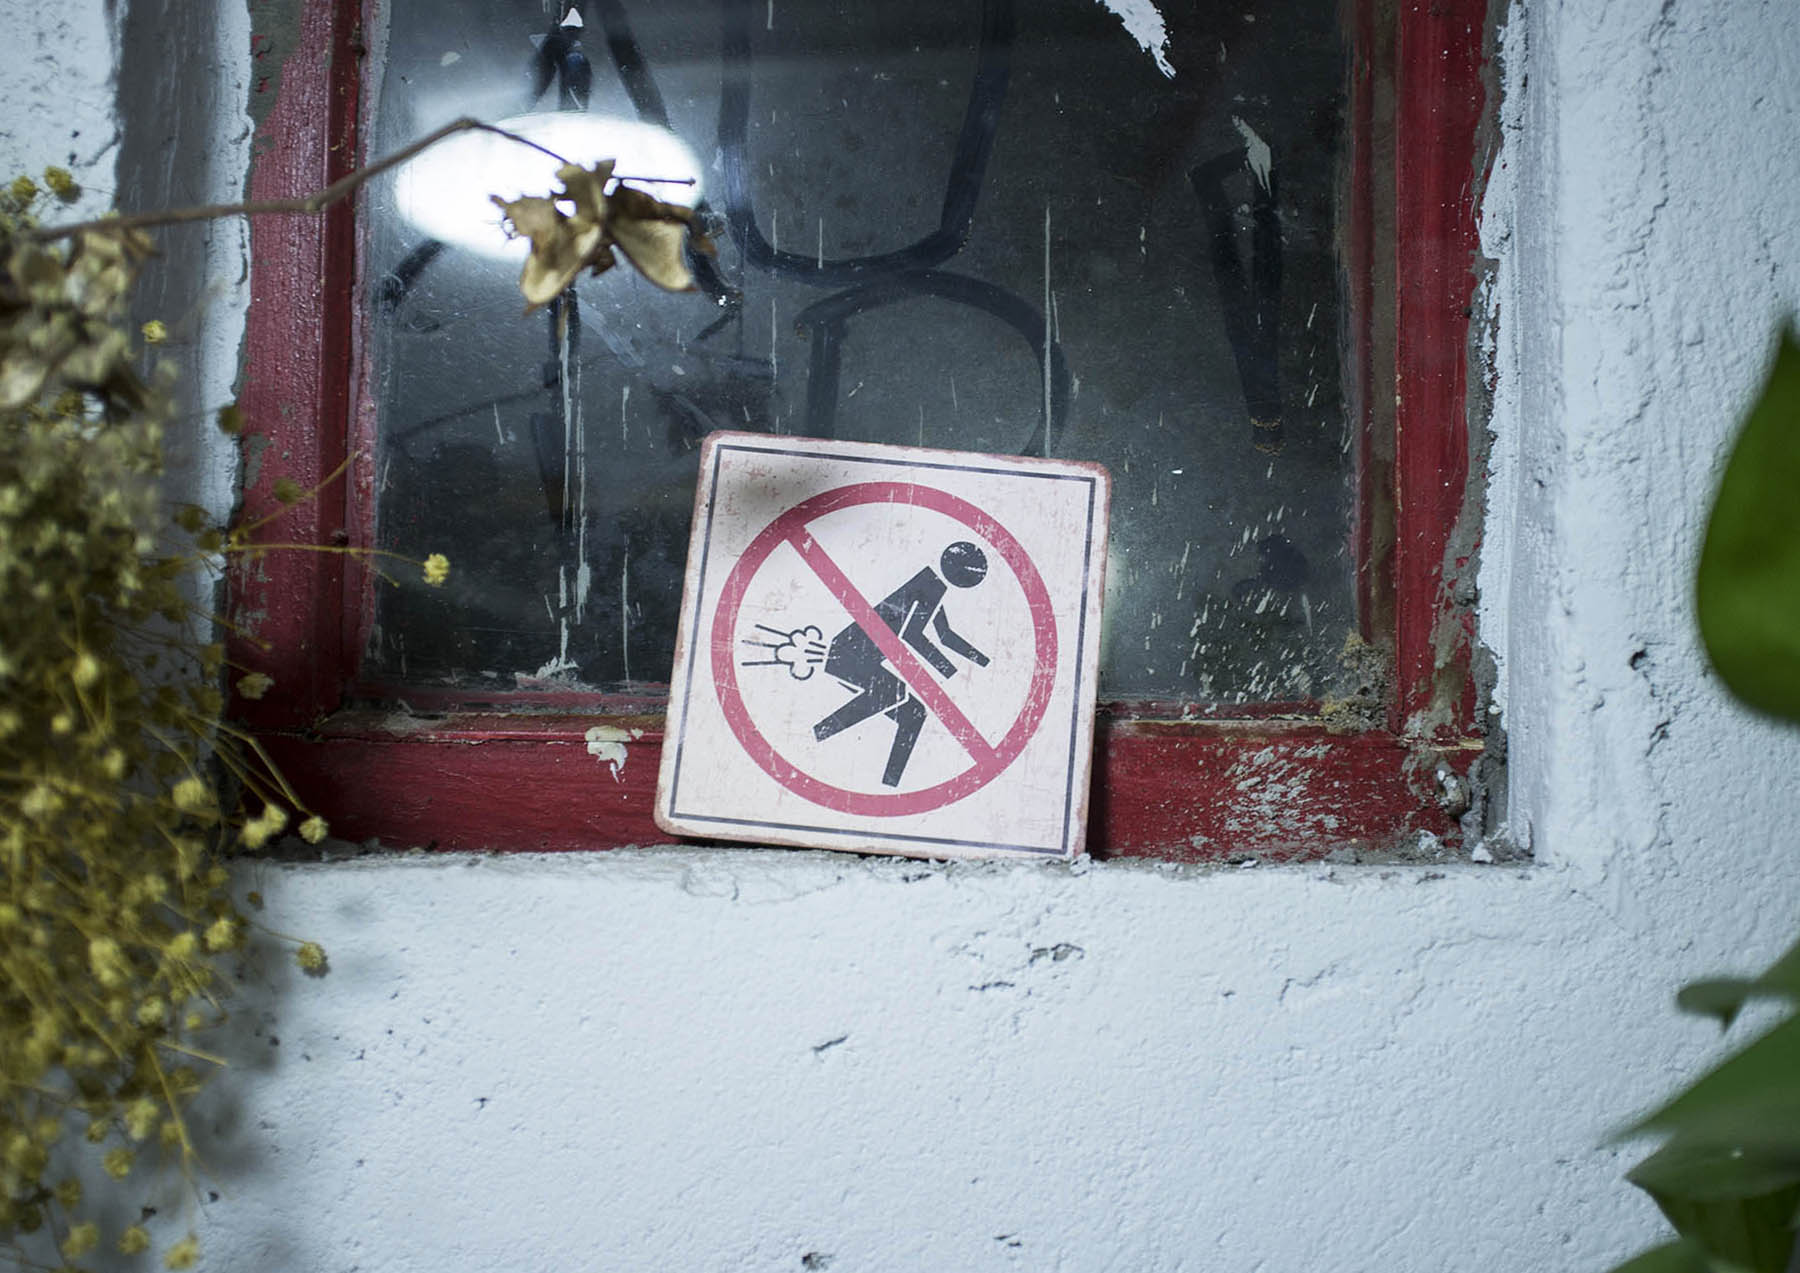 No farting sign in the local pub.